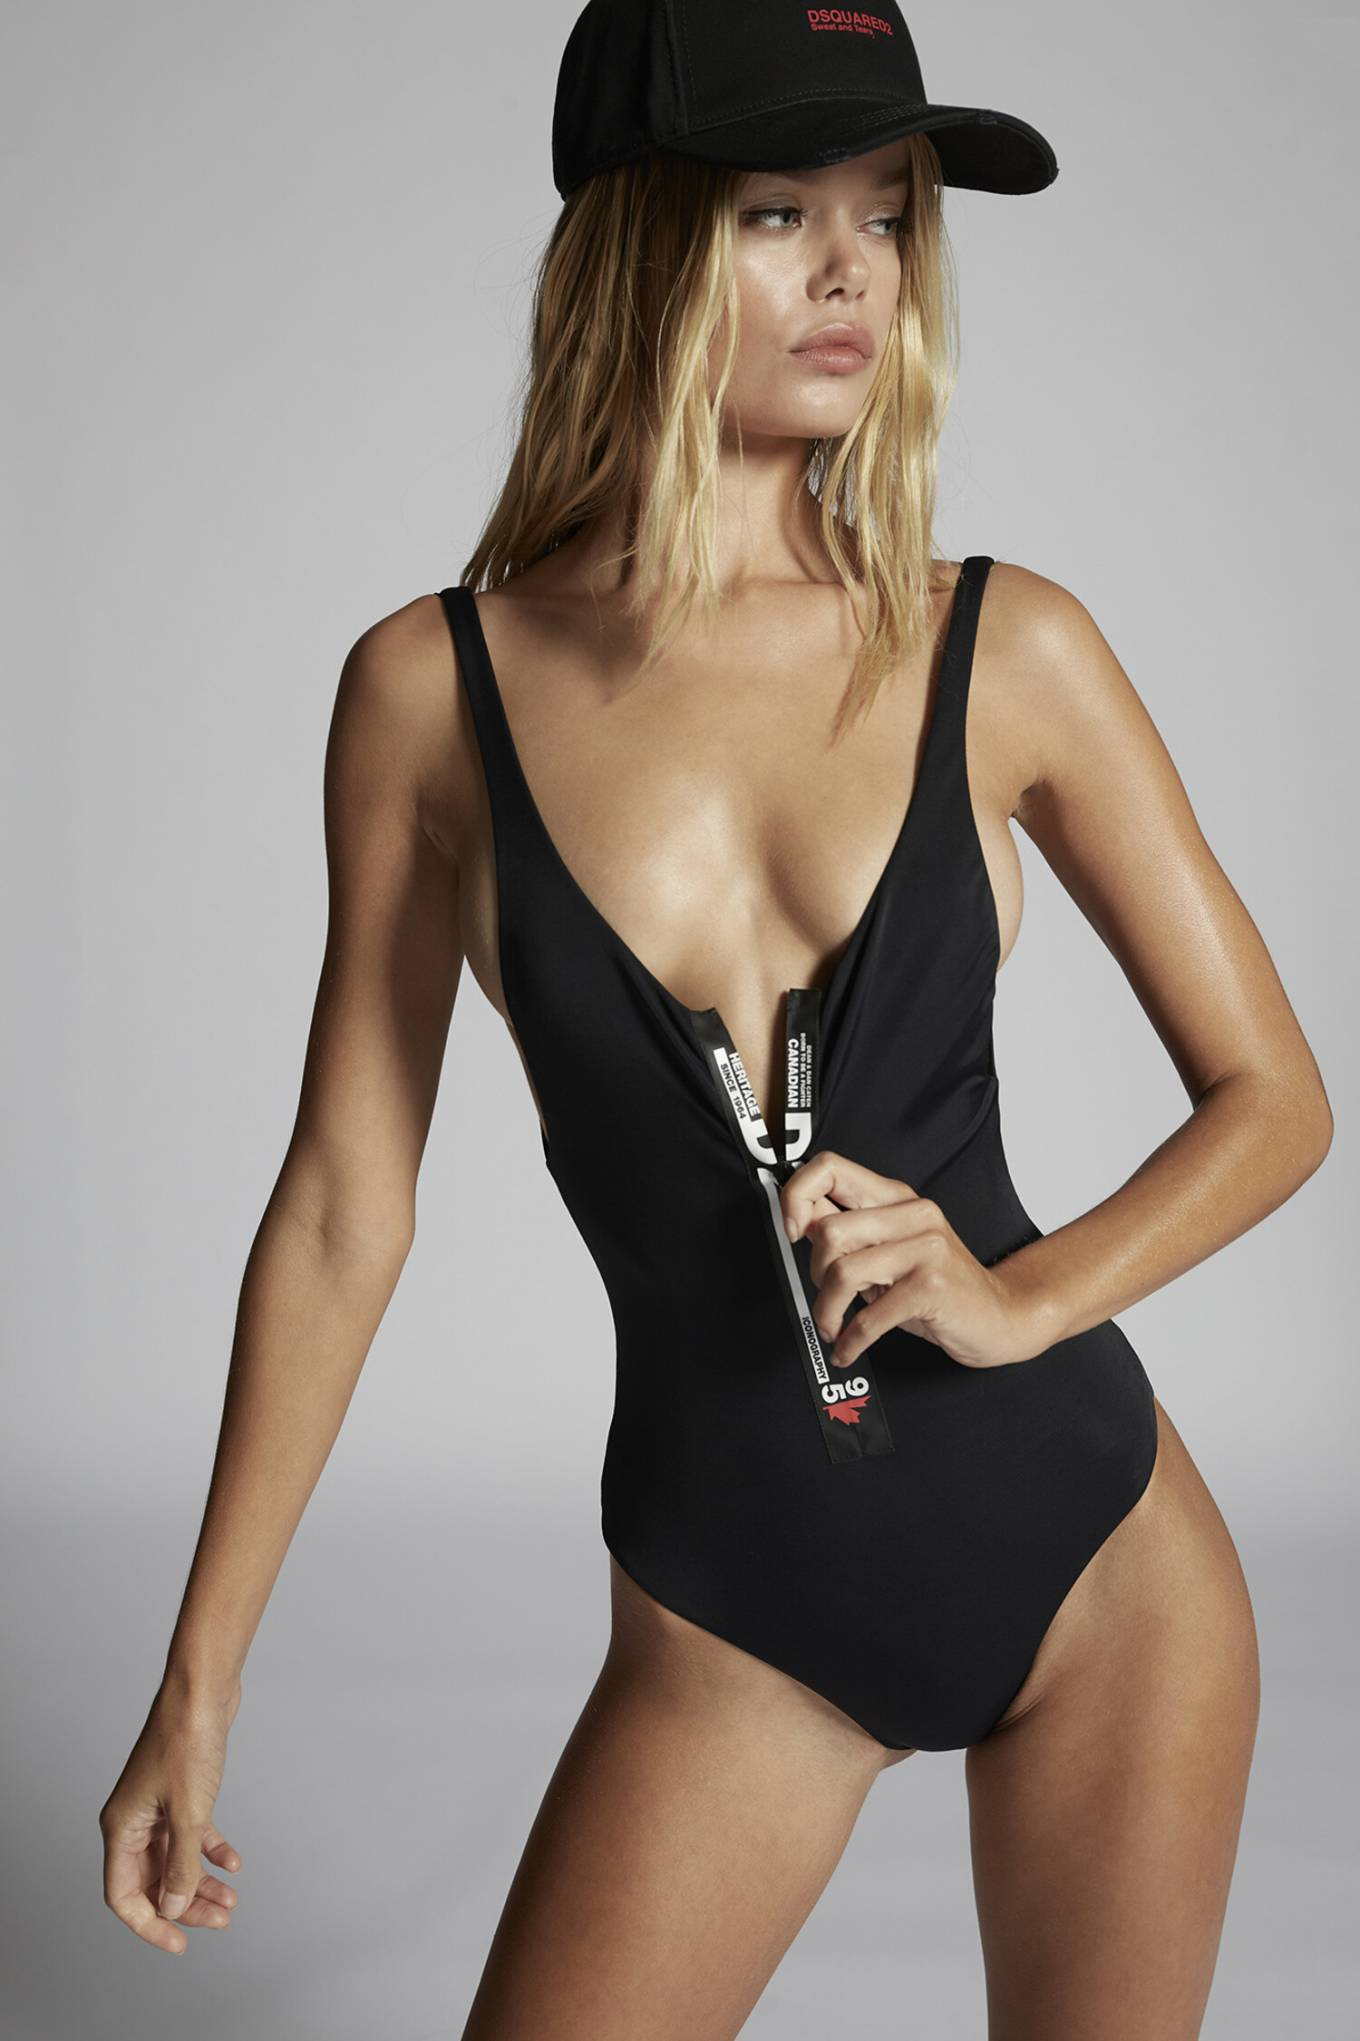 Frida Aasen donning a plunging bodysuit with Polyamide, thin shoulder strap and brand logo